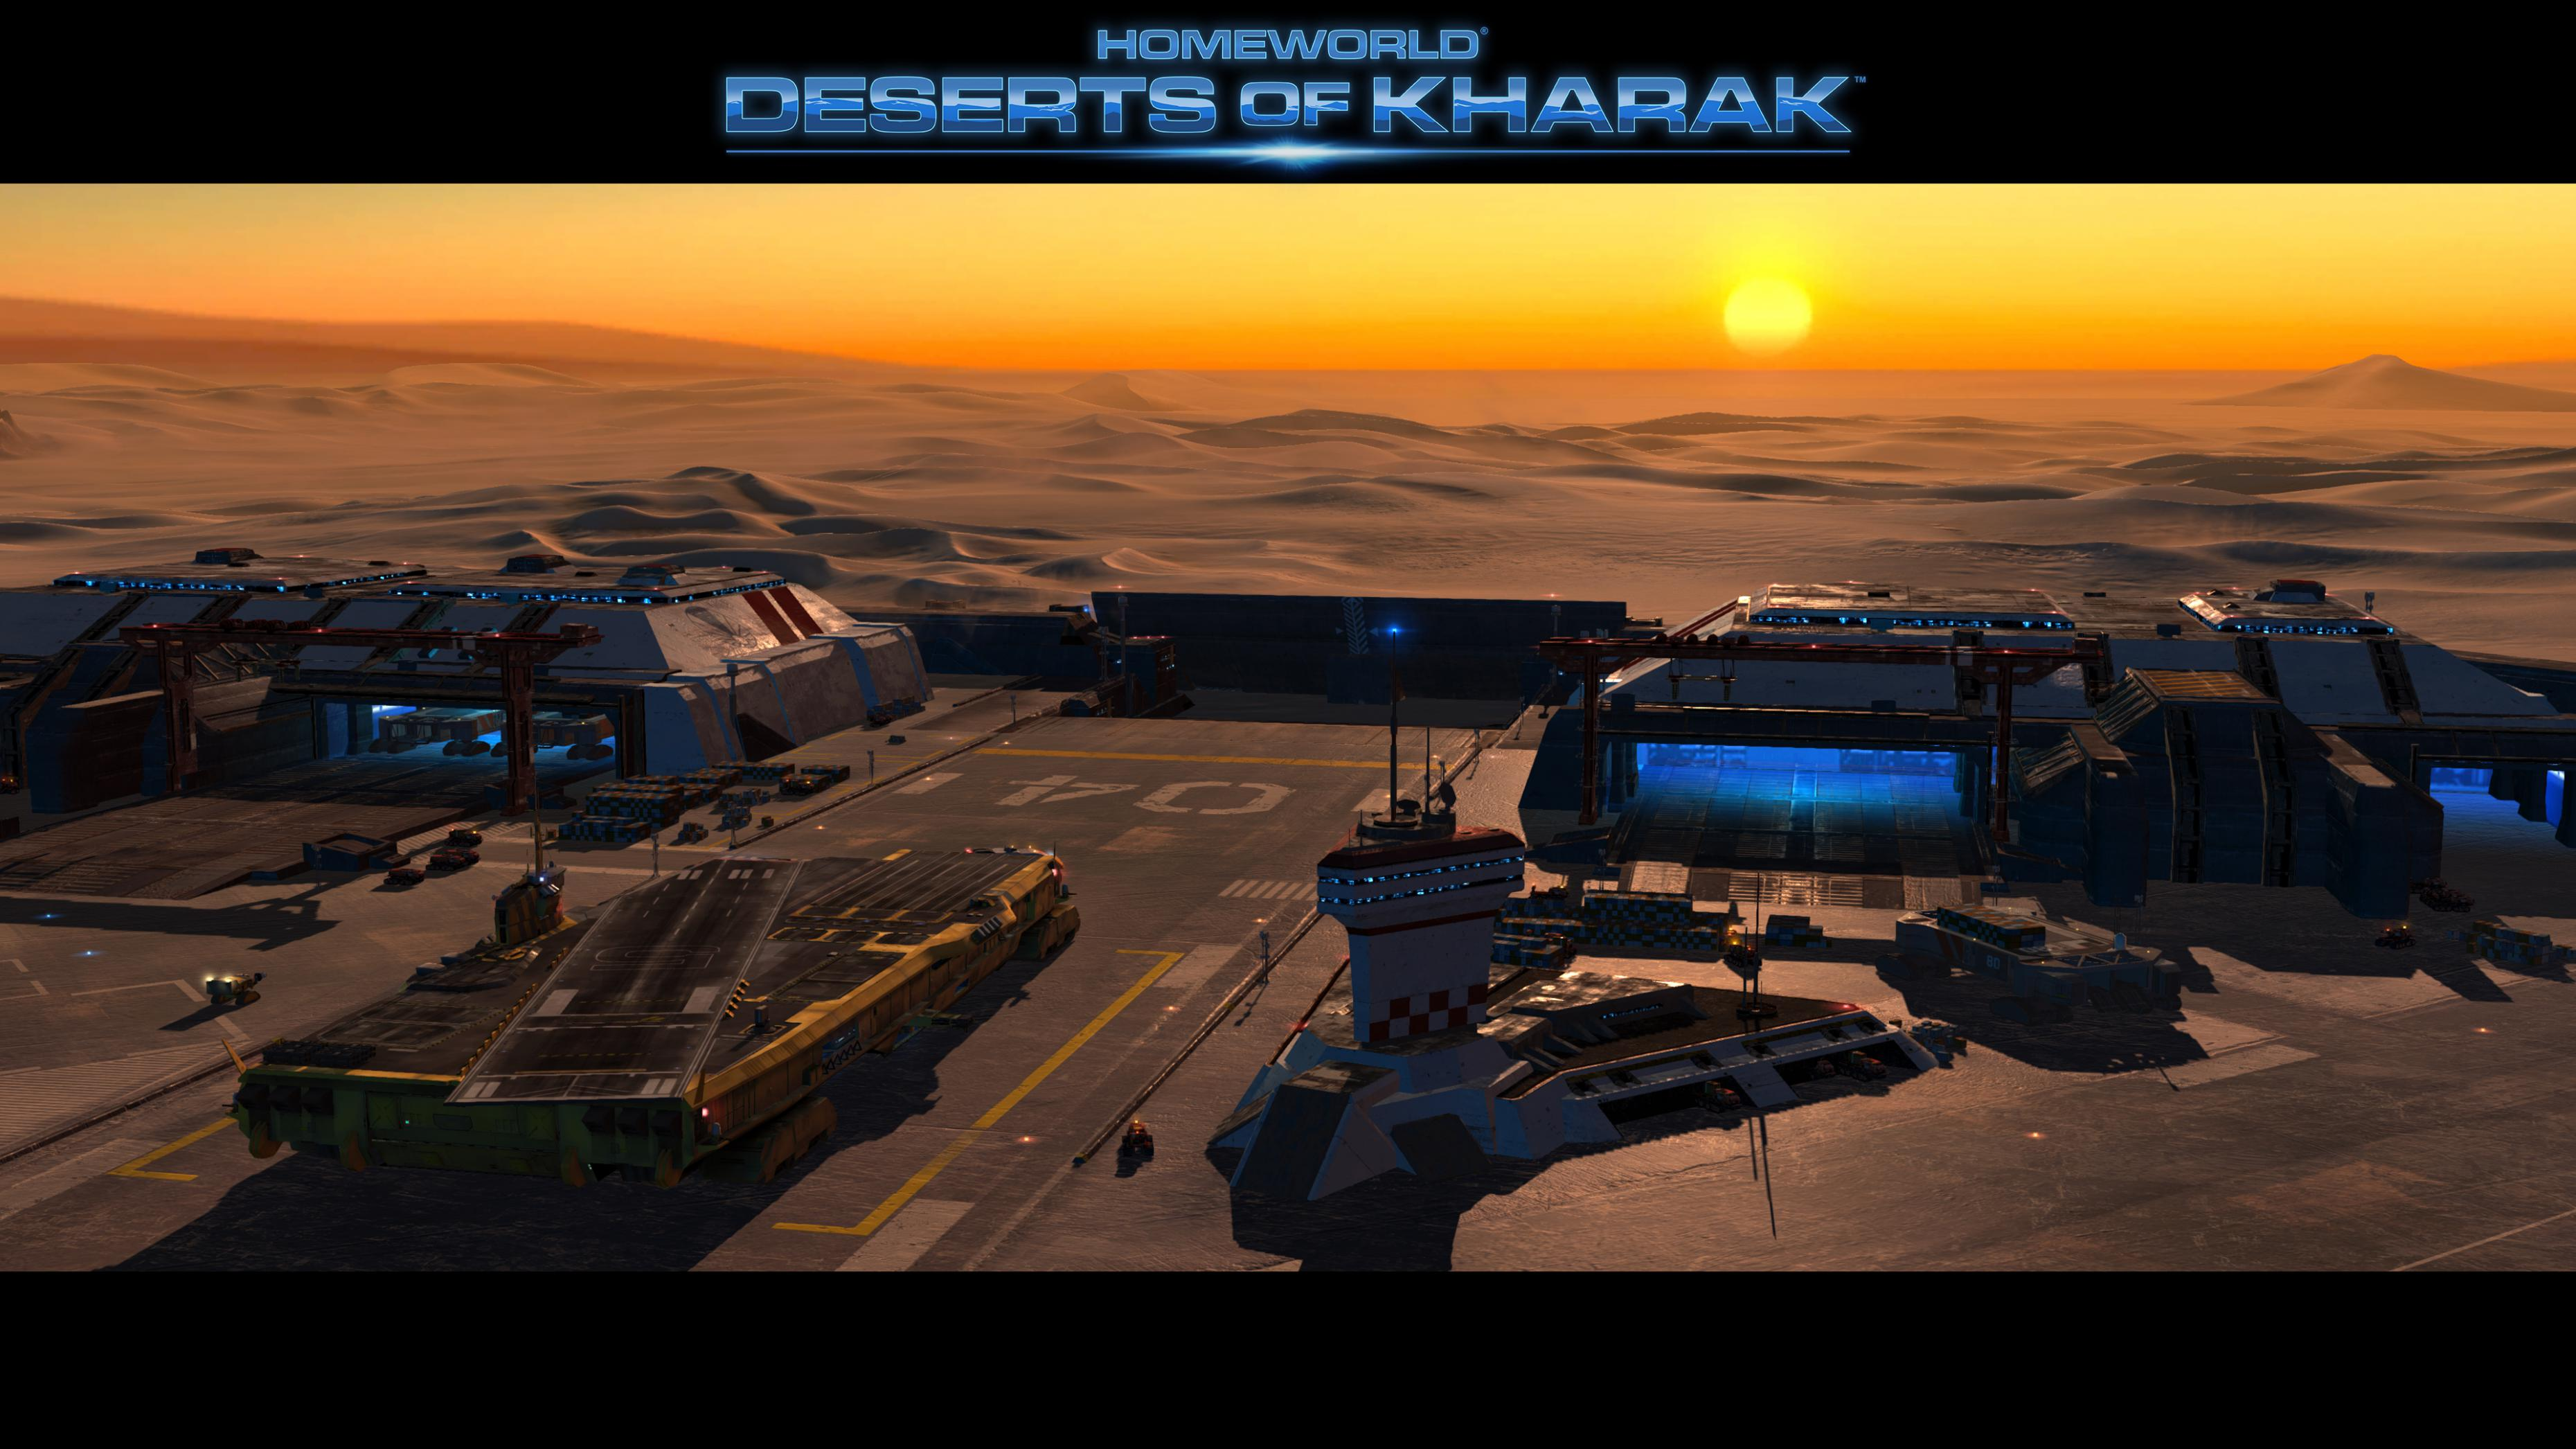 Homeworld: Deserts of Kharak #7